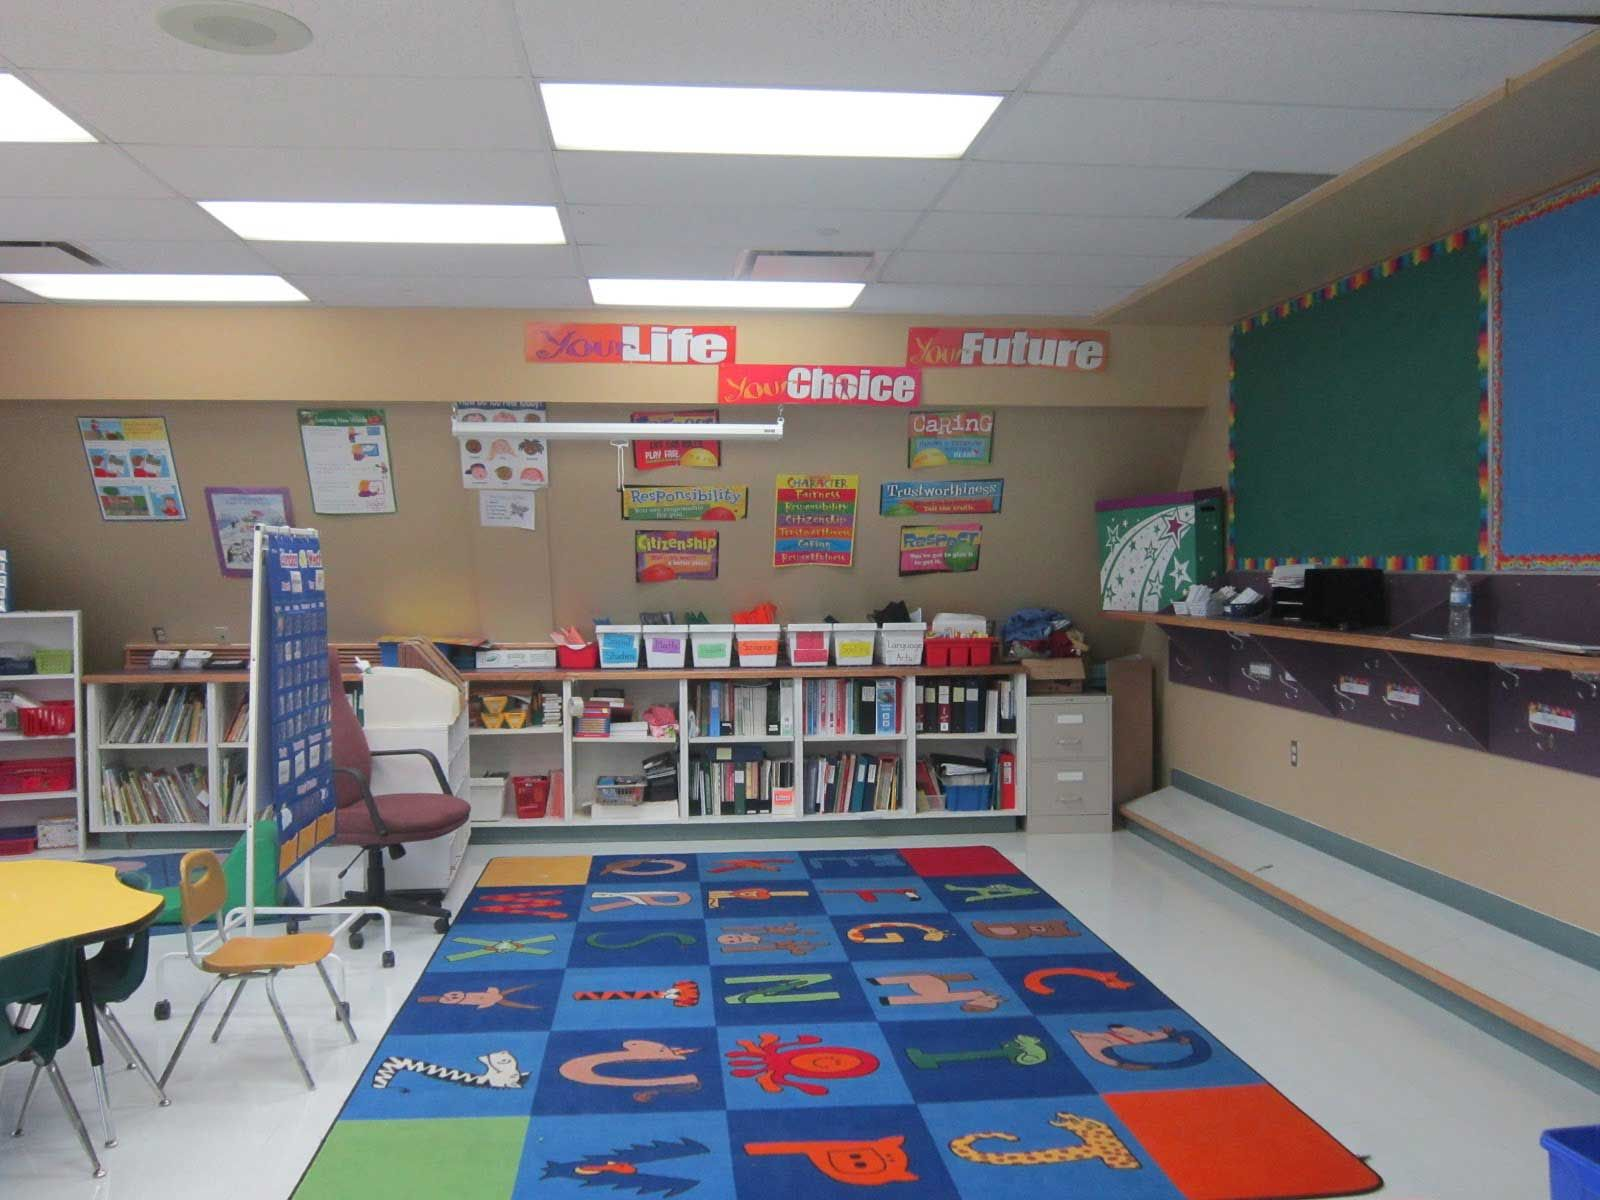 Interior Design For Schools Google Search School Improvement Rh Pinterest  Com Interior Design Plans Graphic Design Class